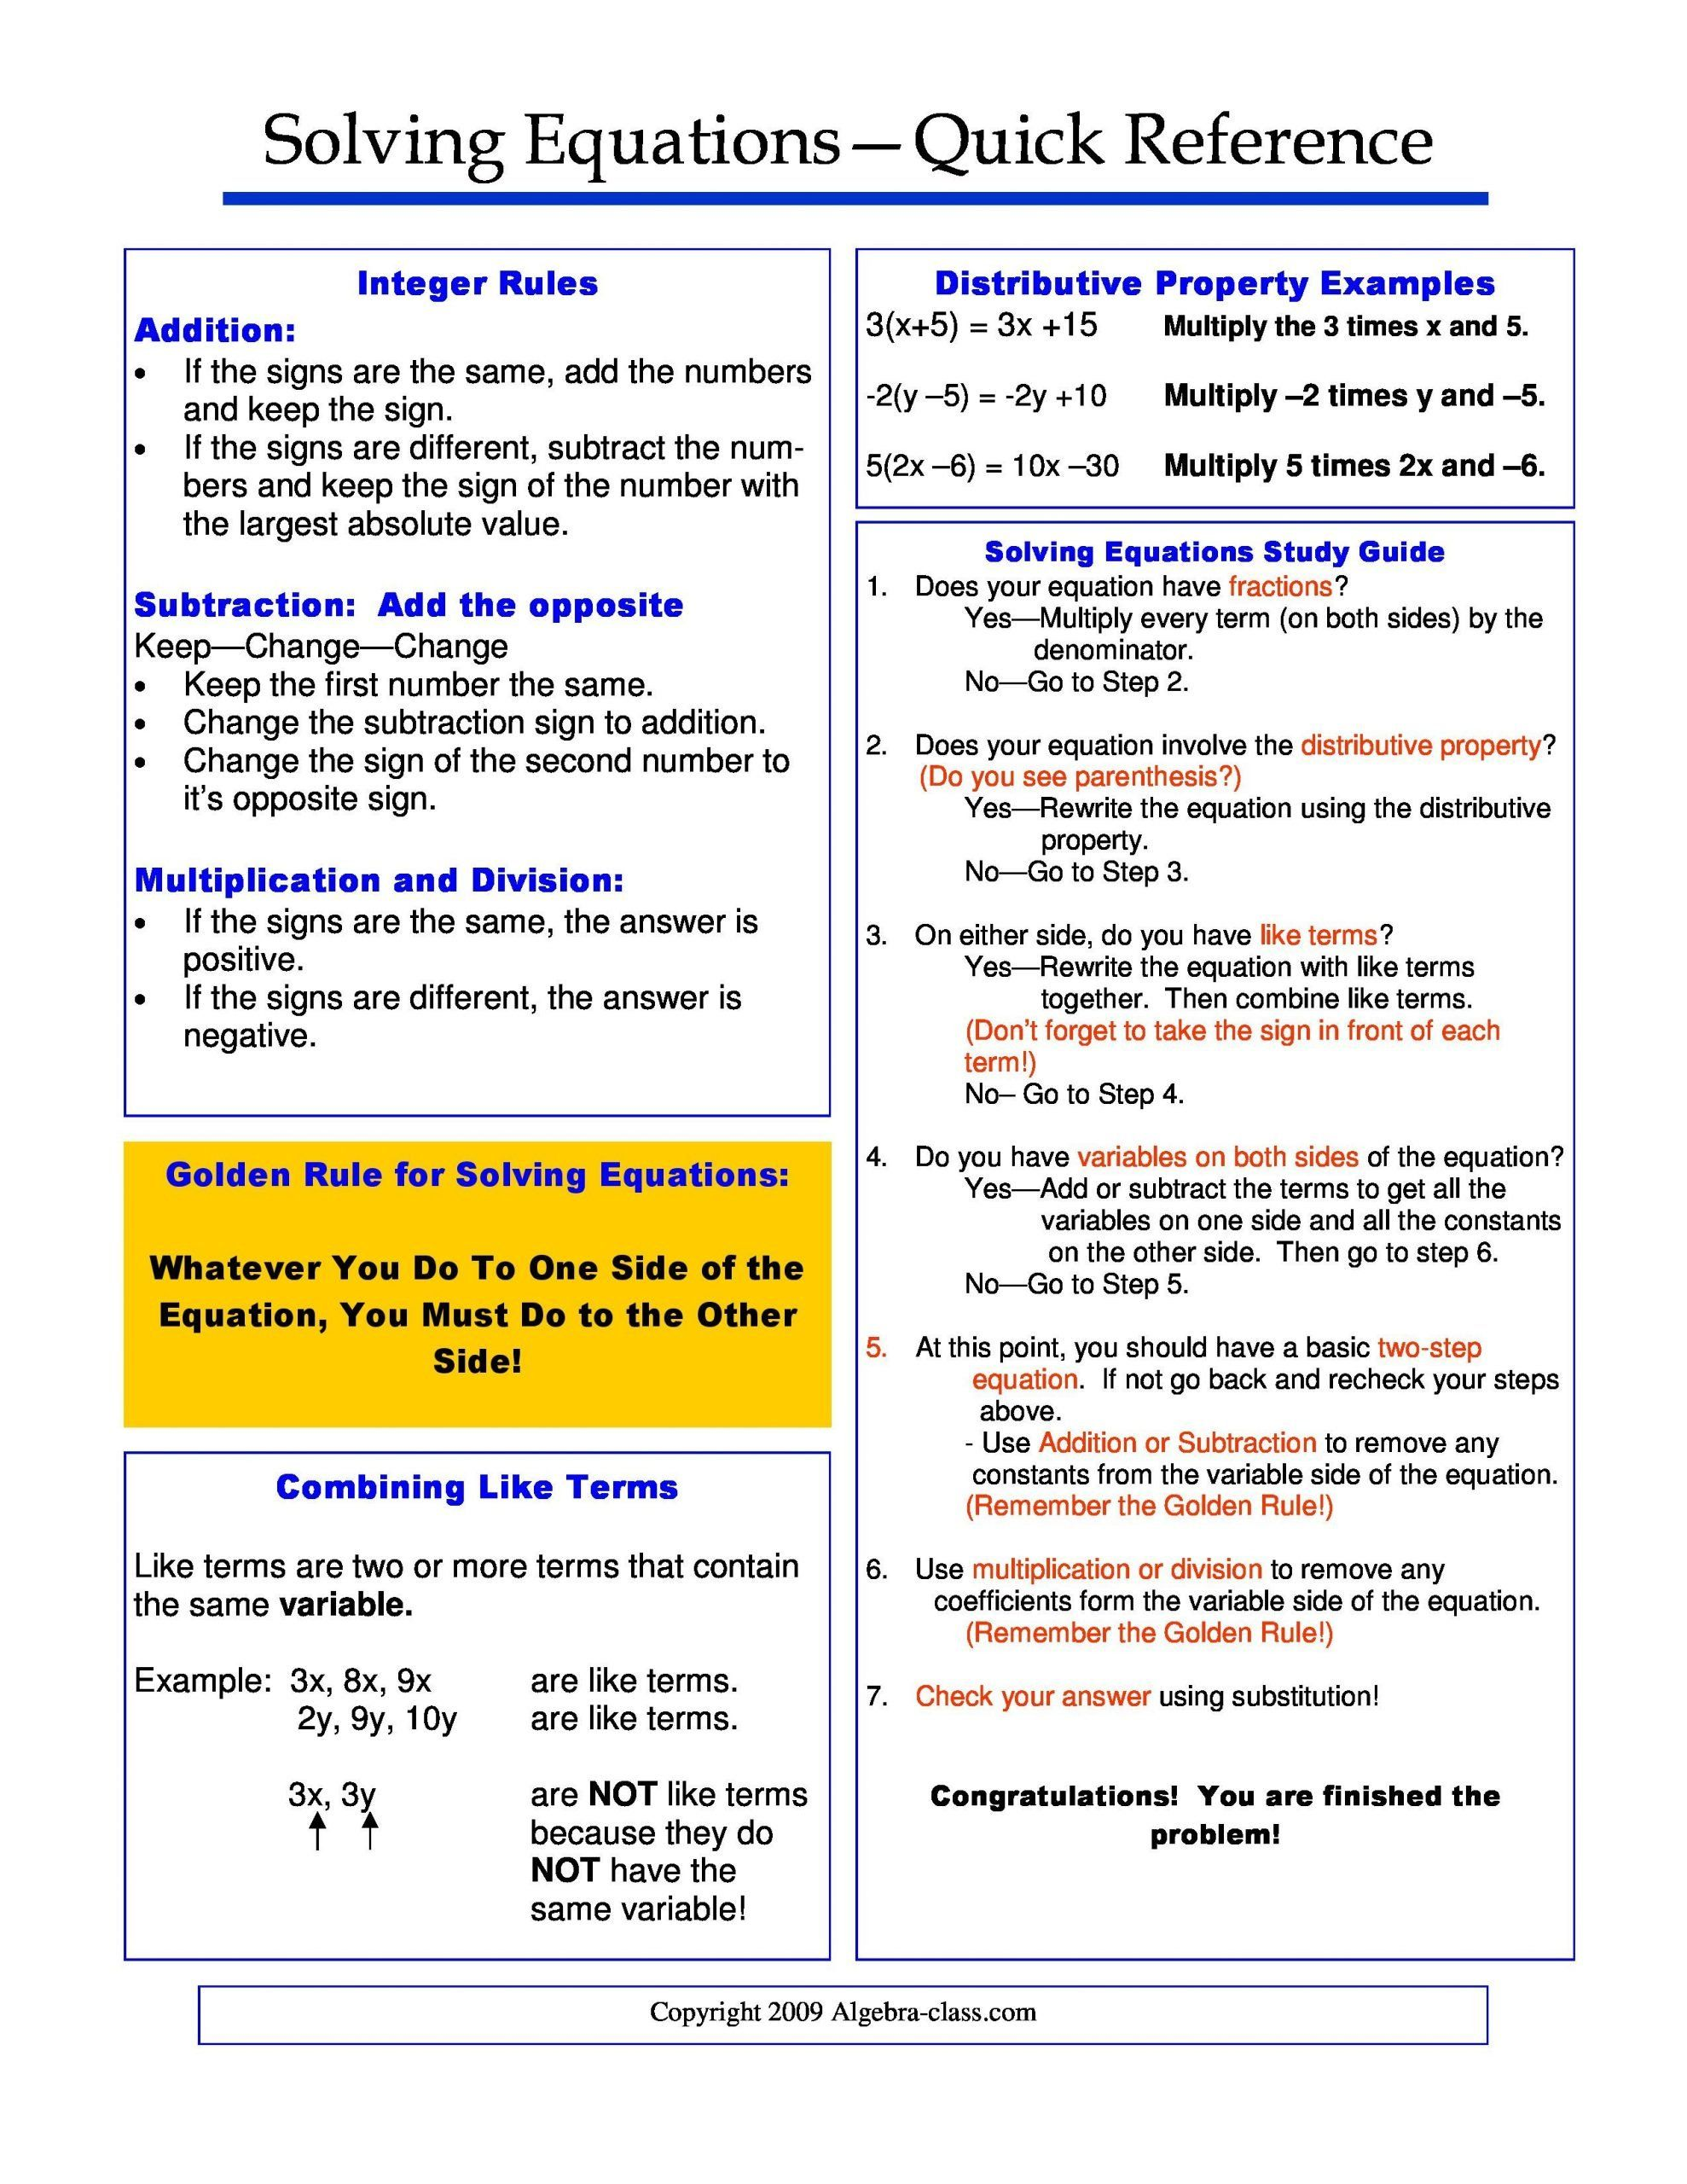 Algebra 1 Statistics Worksheets E Page Of Notes For